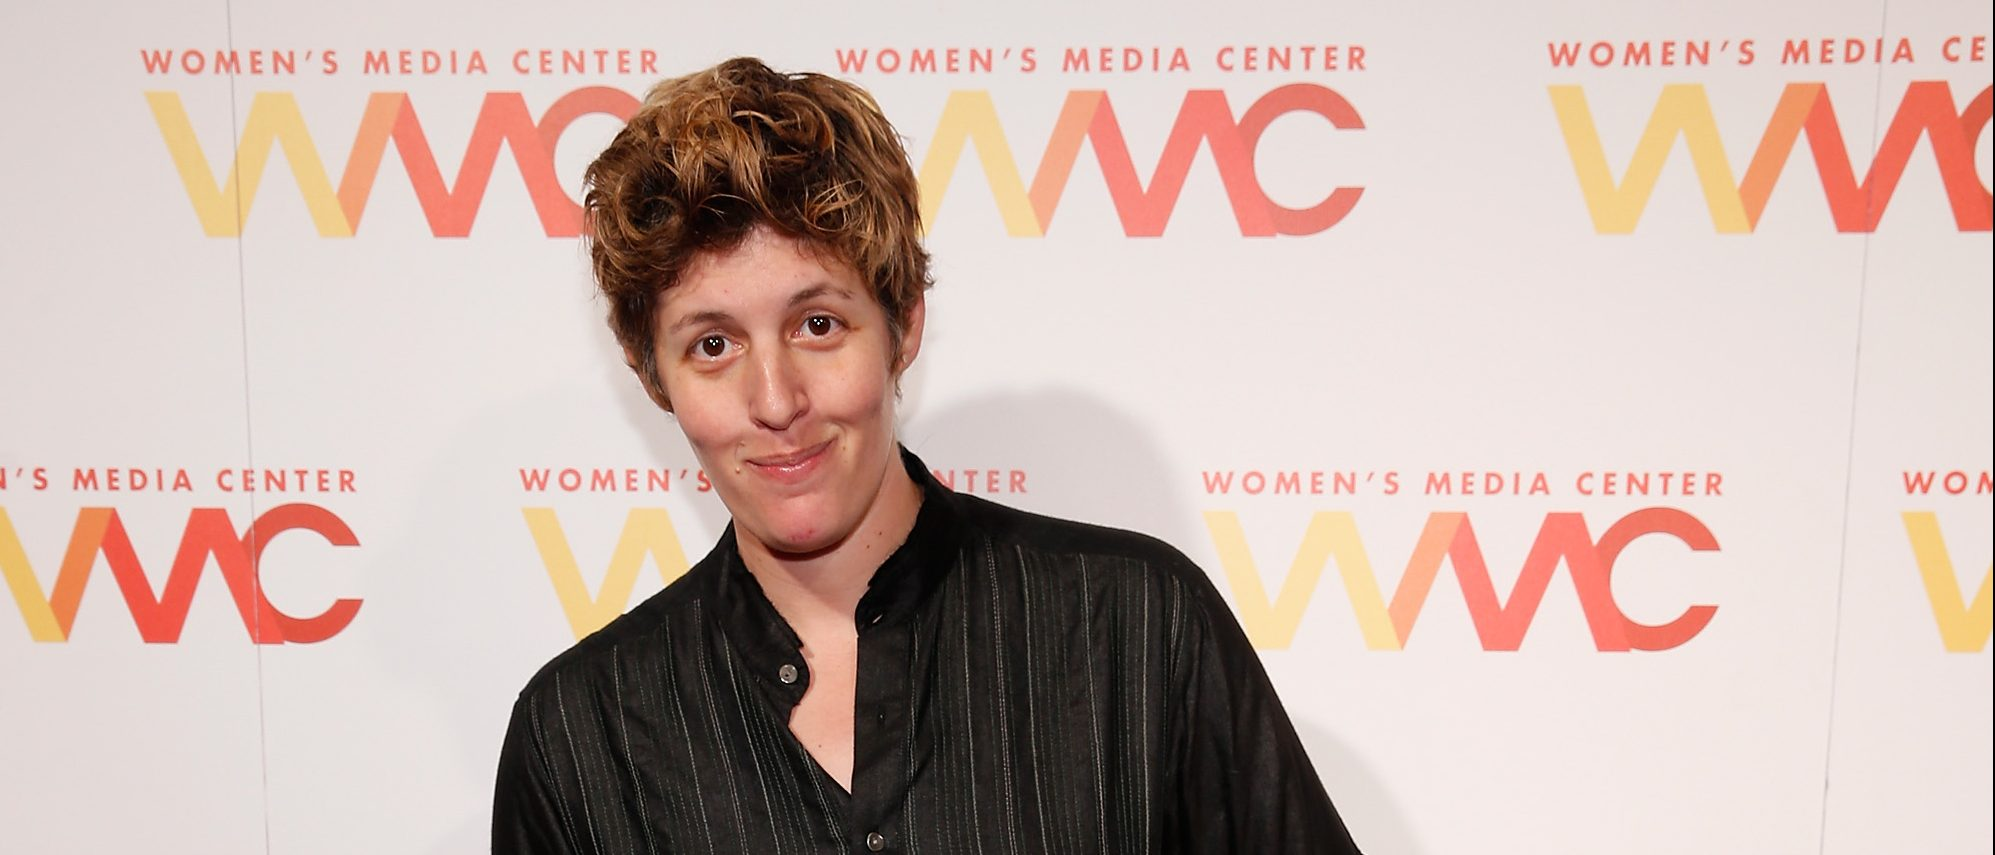 Sally Kohn (Getty Images)